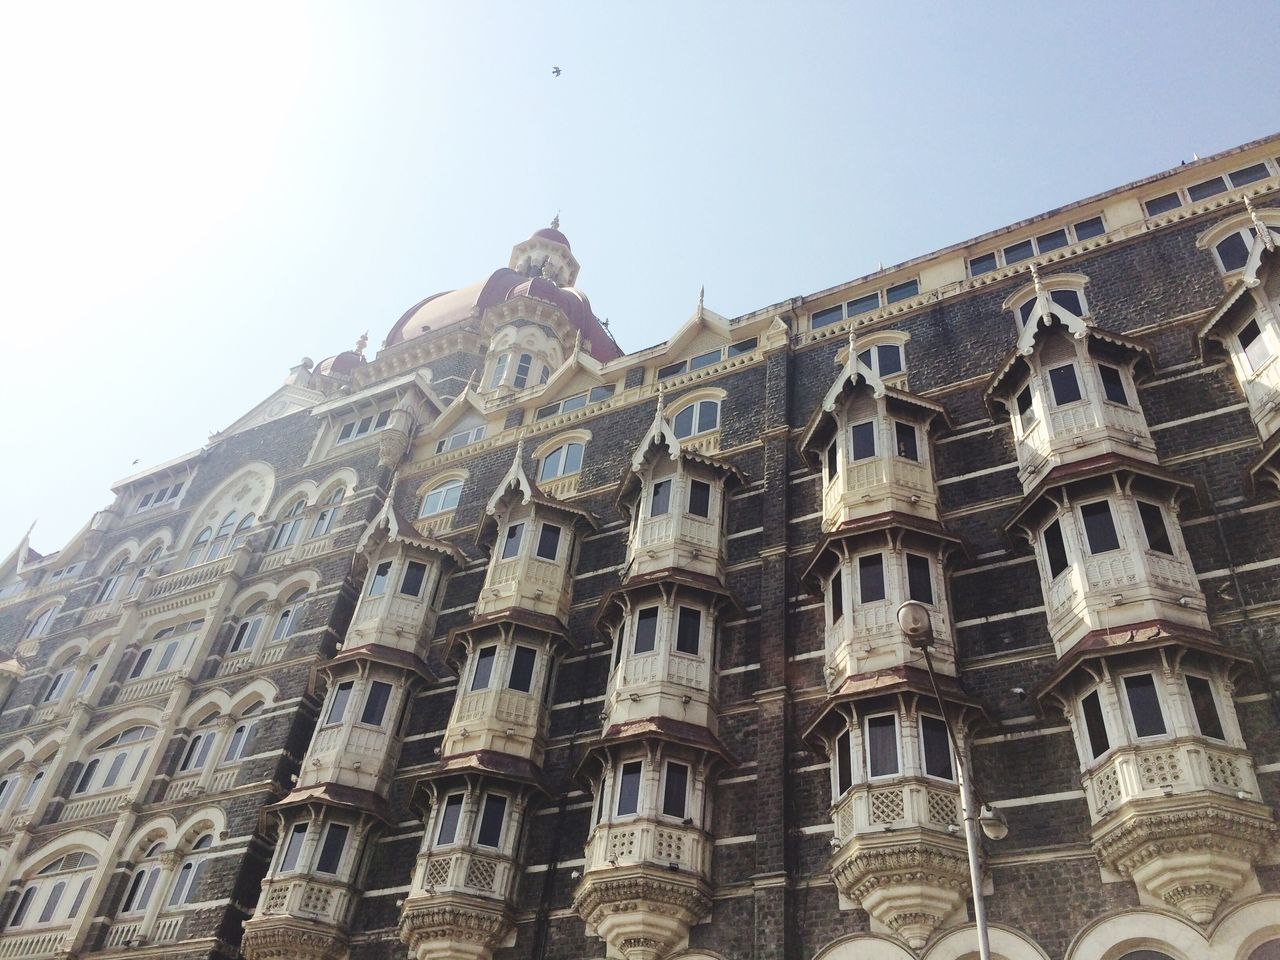 architecture, low angle view, history, clear sky, no people, building exterior, day, outdoors